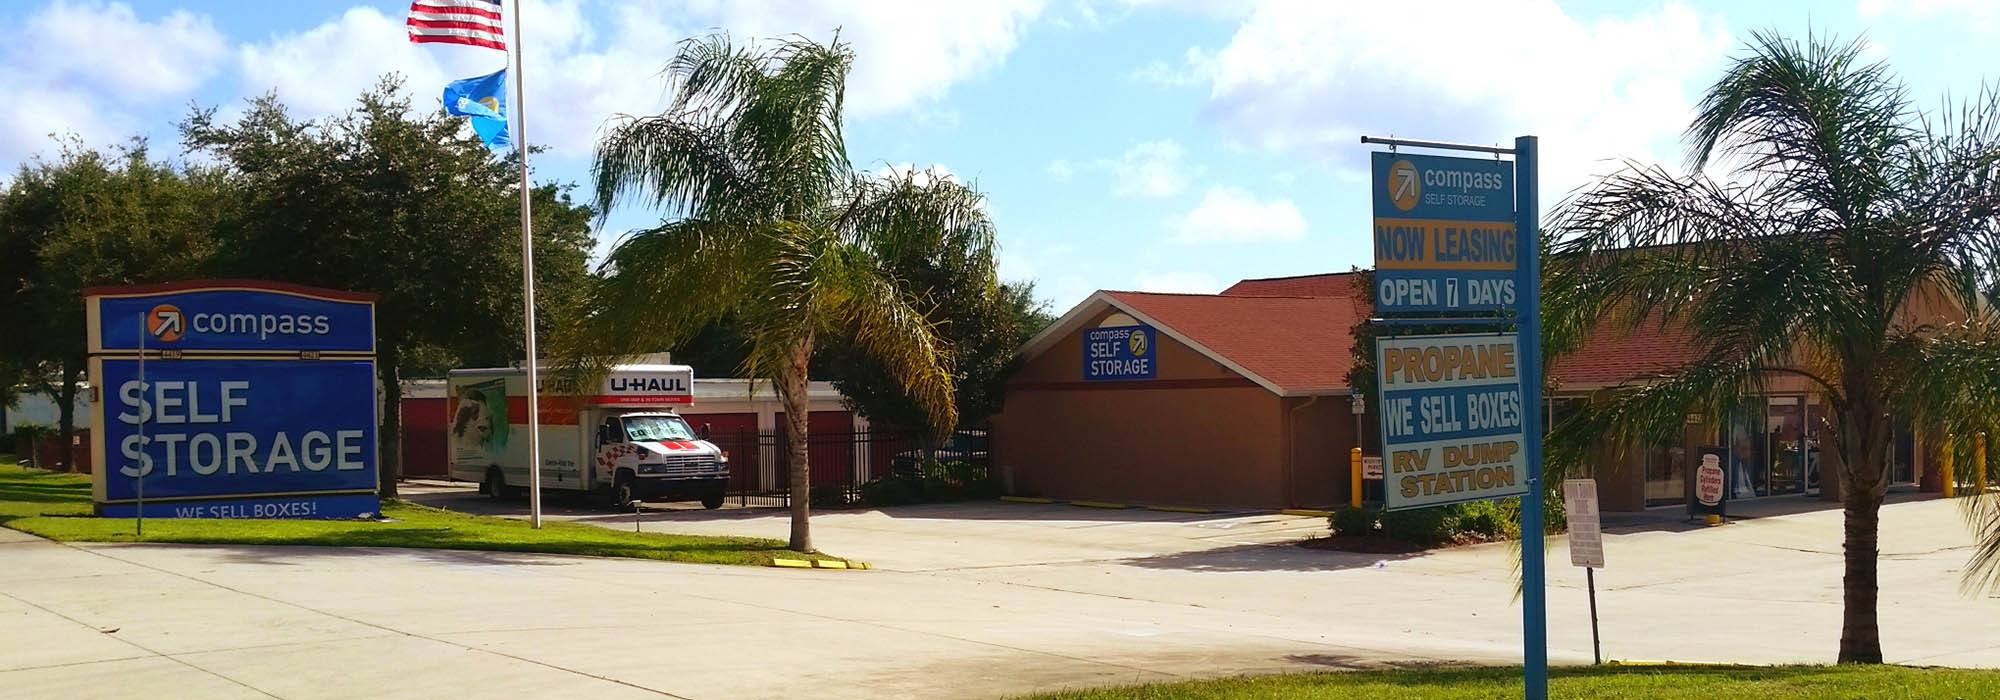 Self storage in New Port Richey FL